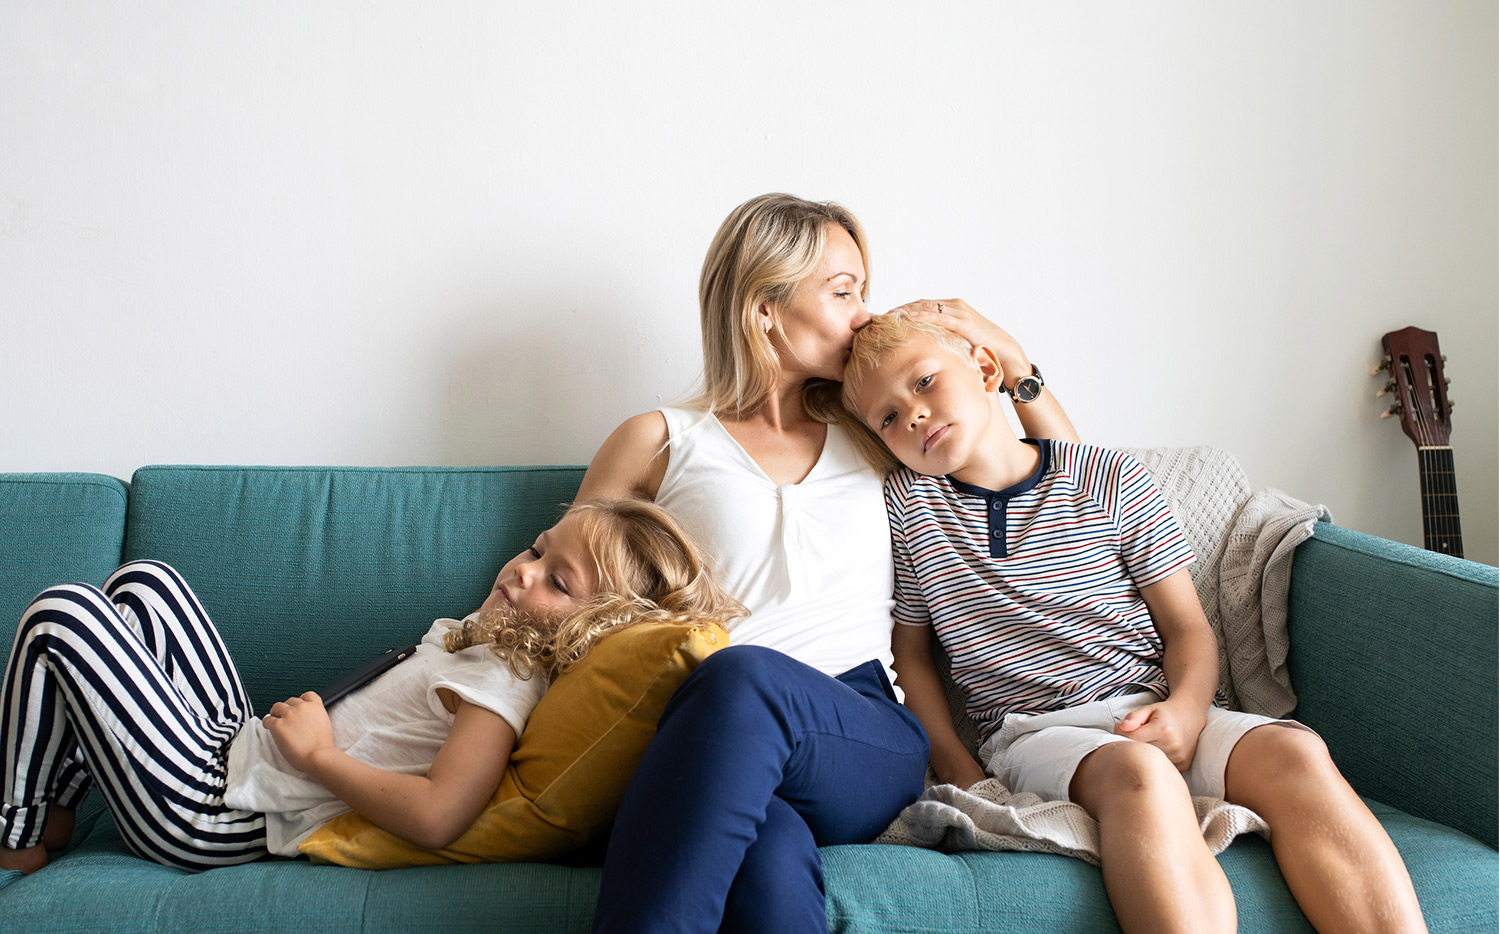 mother and children on a couch together